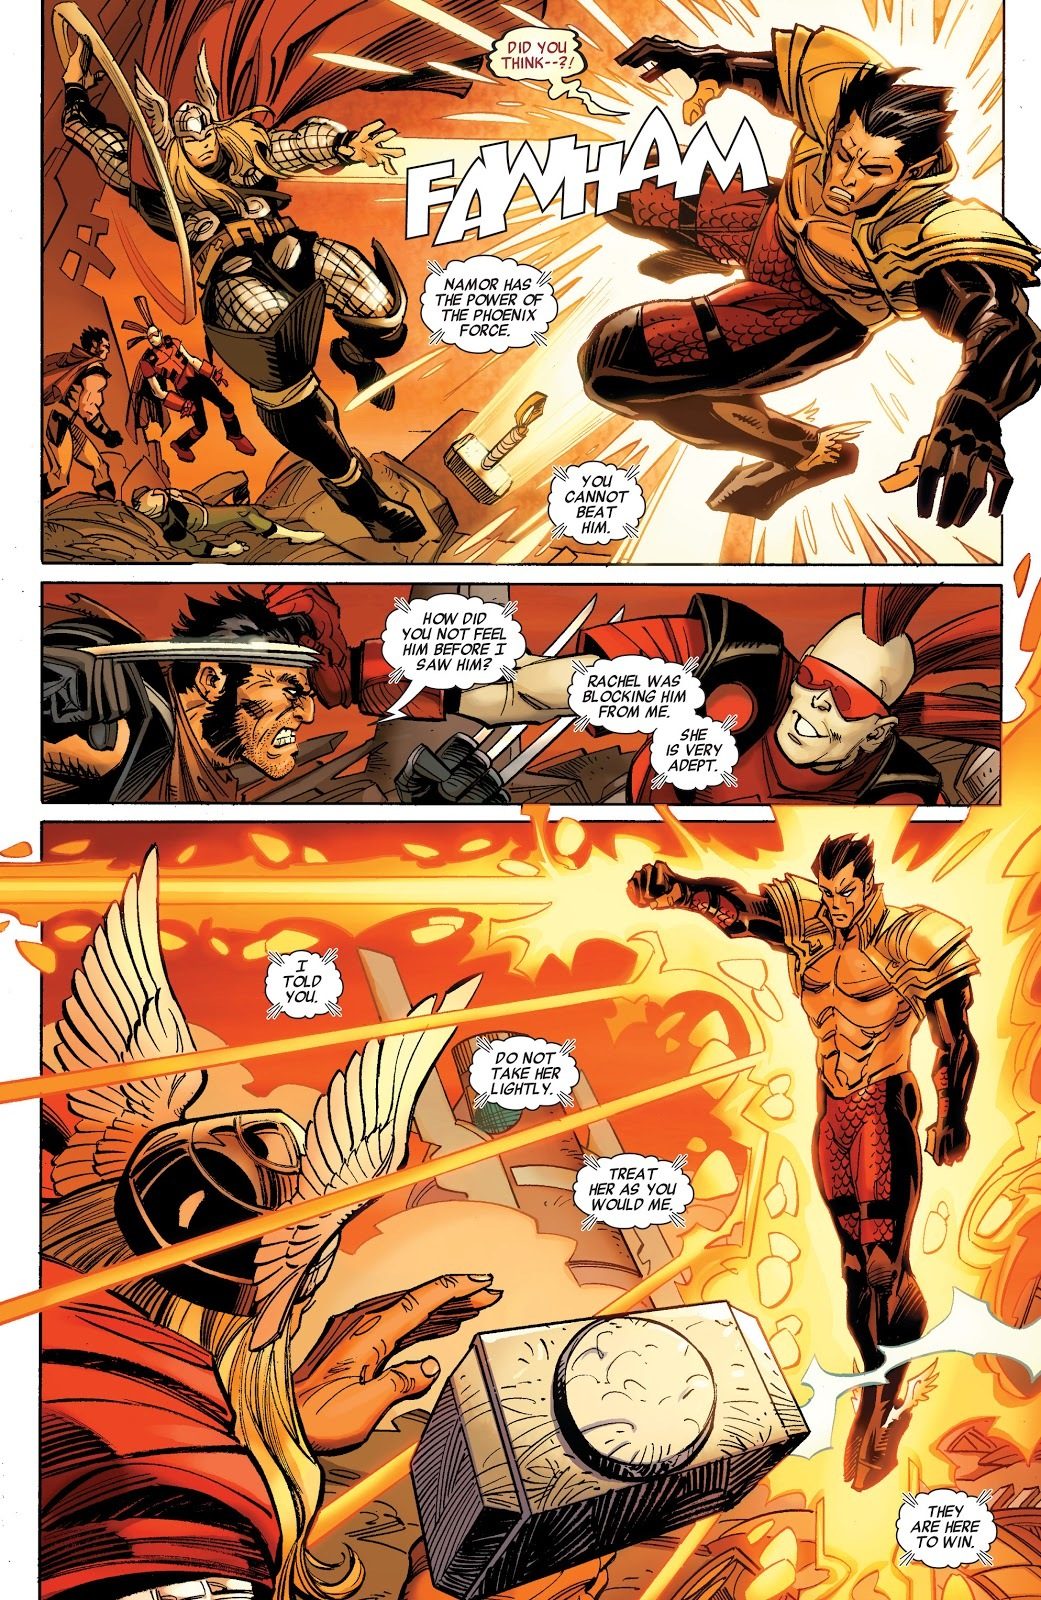 Able to block Xavier from sensing Phoenix Namor without knowing he was there. Xavier warns that Rachel is as much of a threat as he is